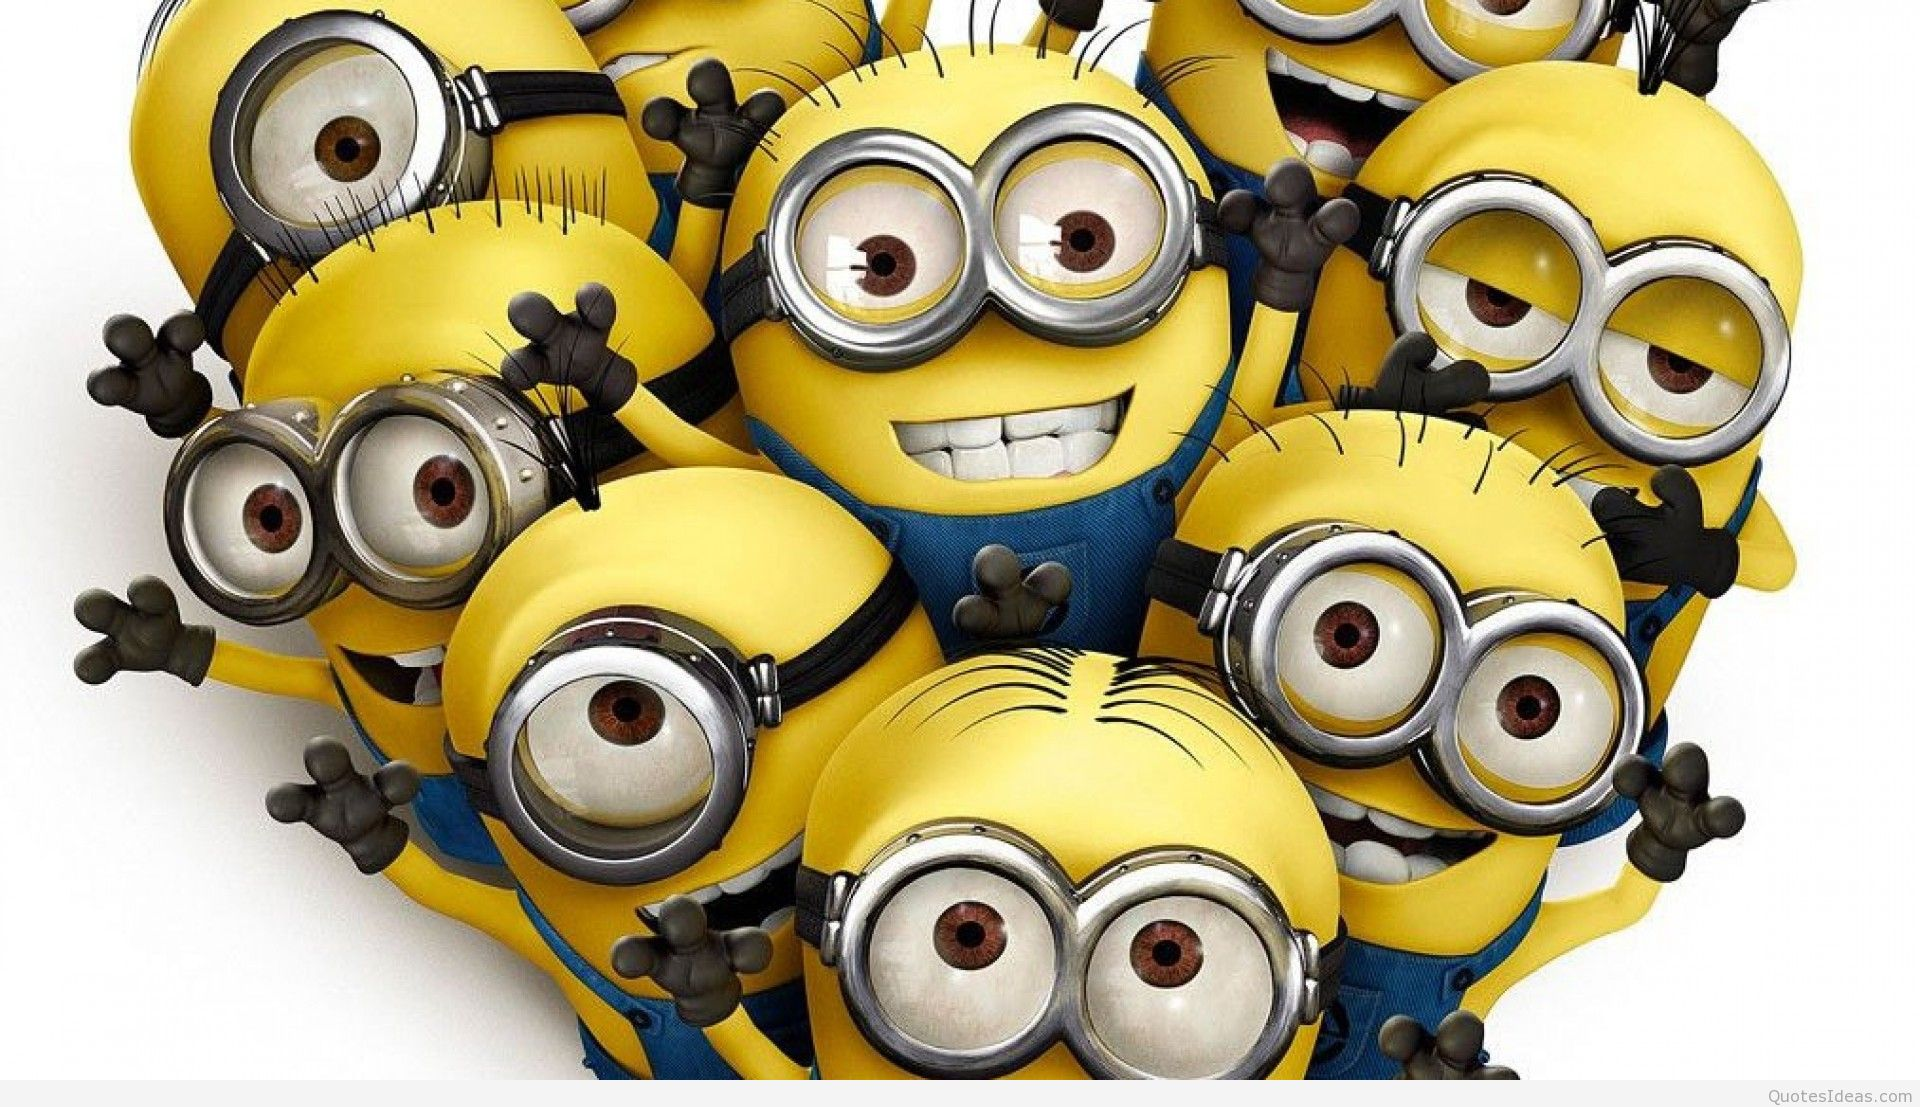 49 ] Minions Cell Phone Wallpaper On WallpaperSafari